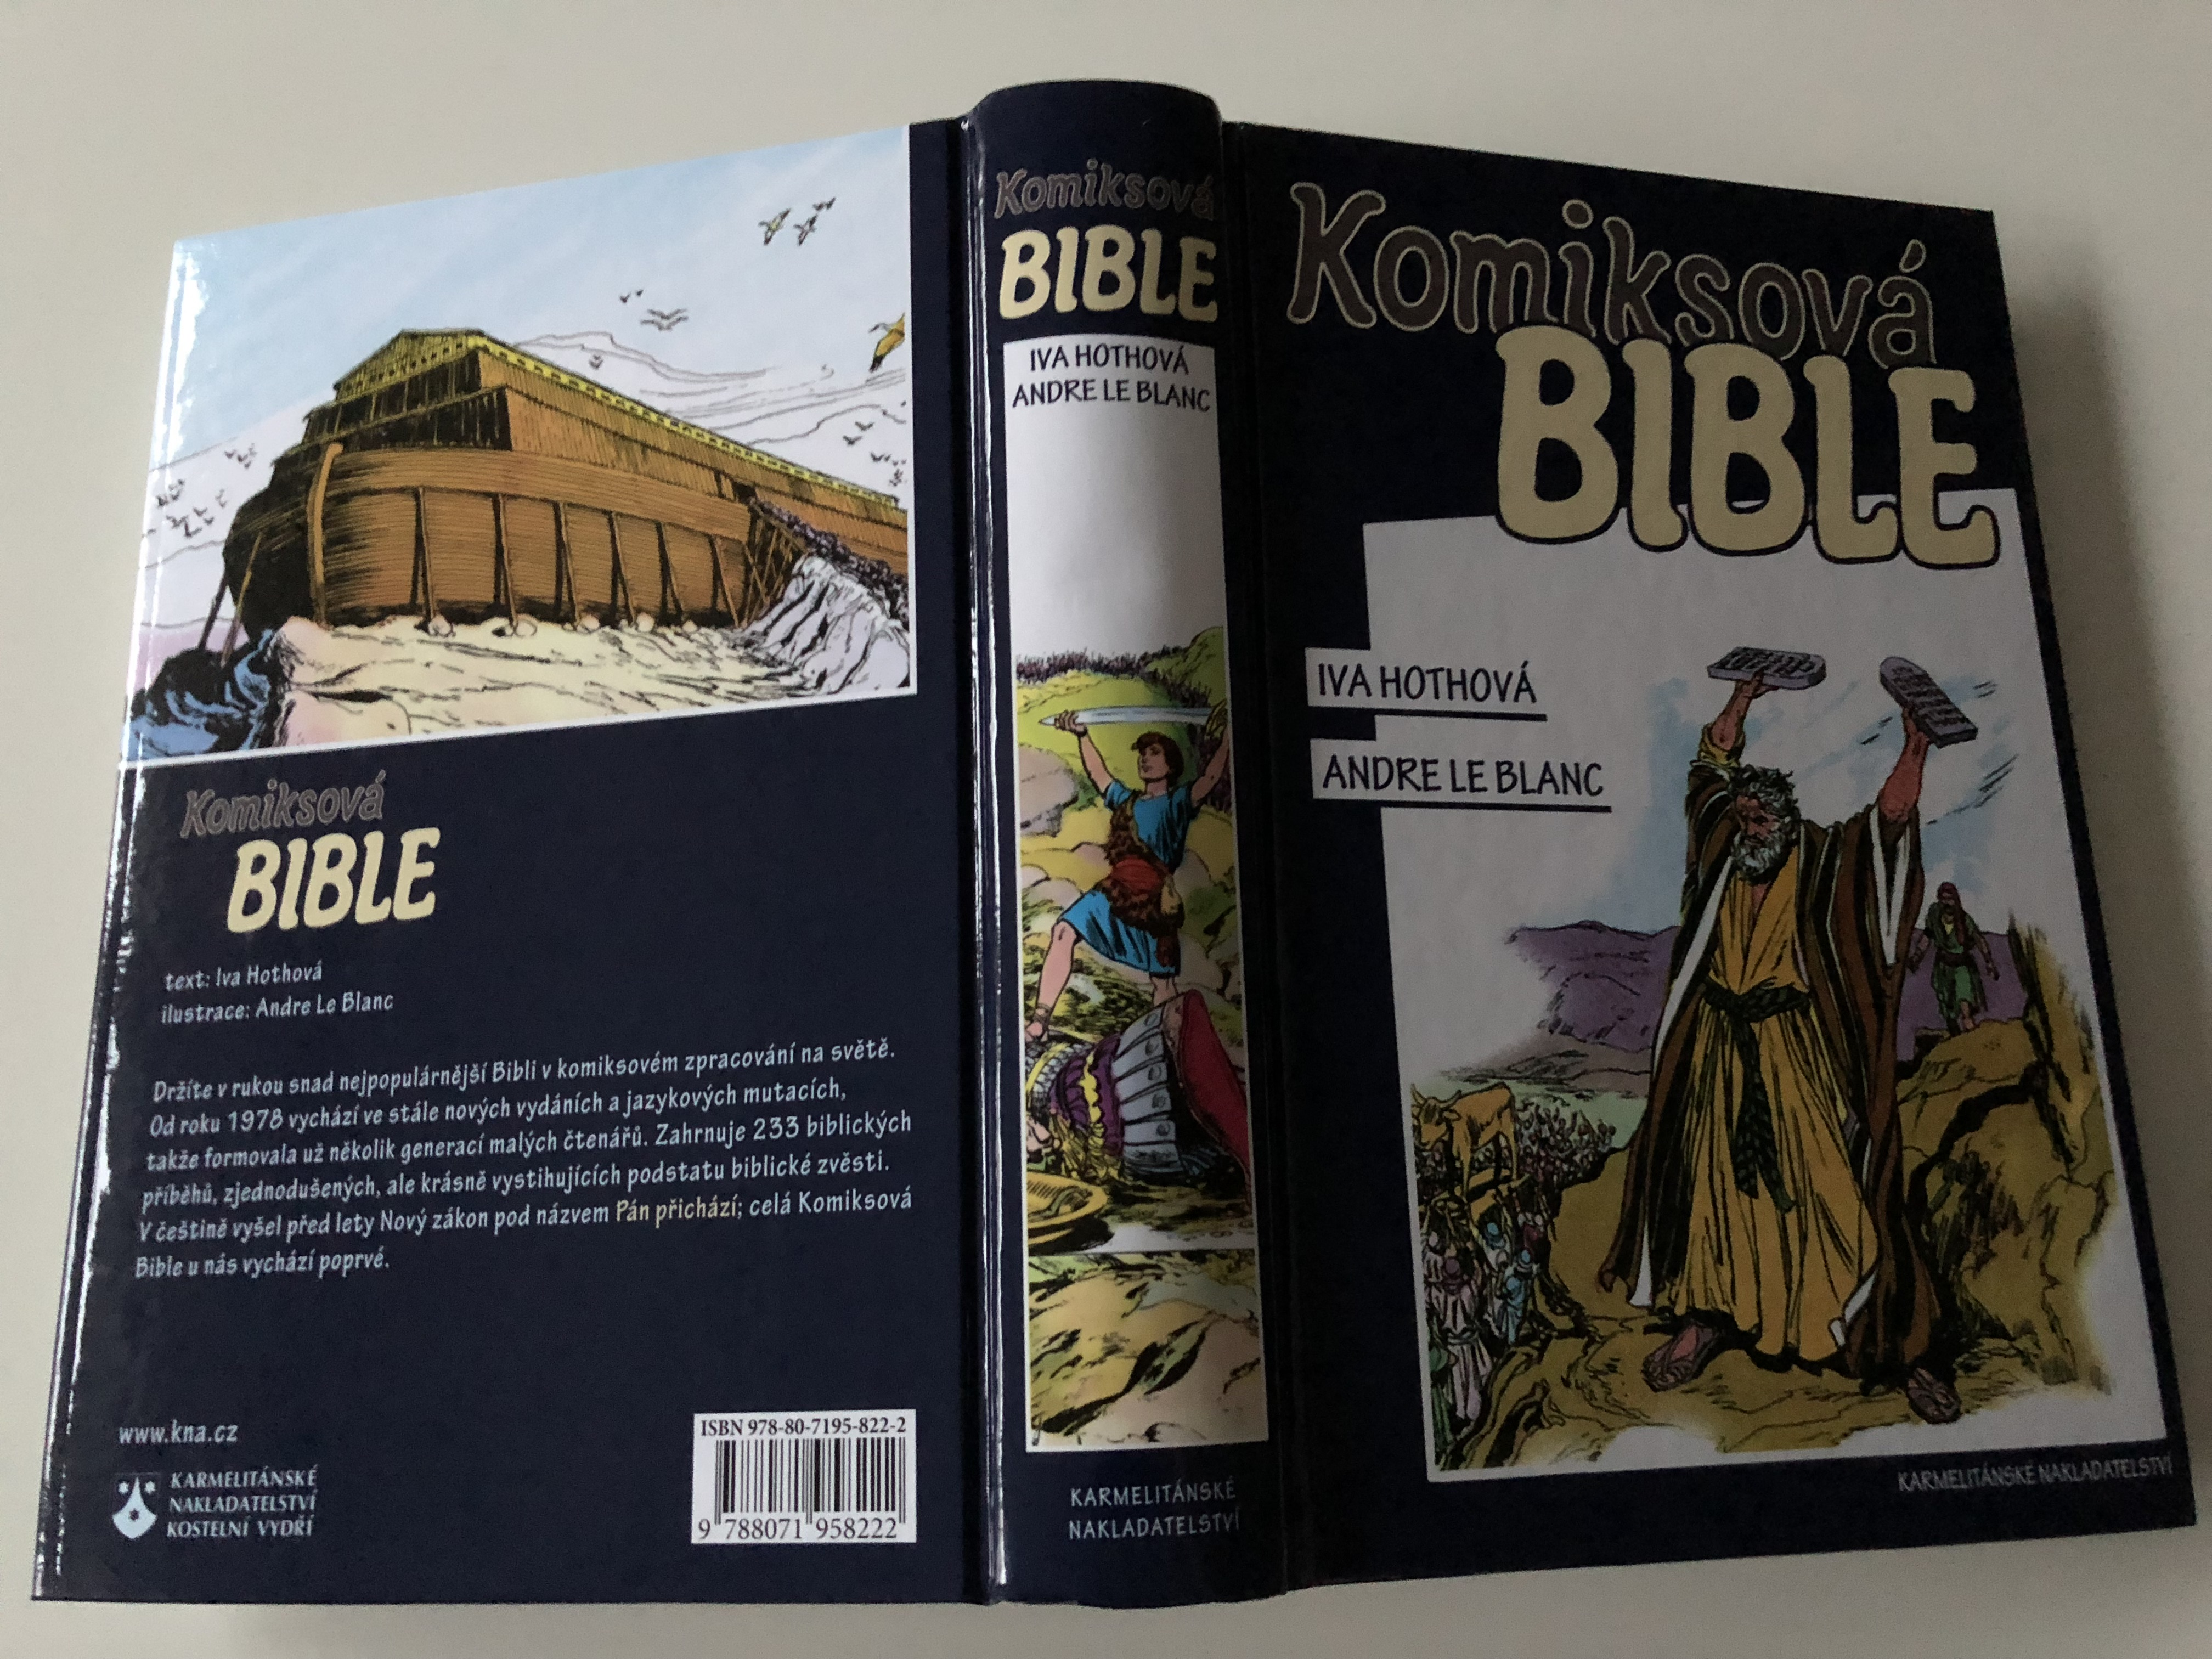 komiksov-bible-czech-edition-of-the-picture-bible-from-david-c.-cook-publishing-czech-language-bible-comic-for-children-and-teenagers-hardcover-2014-19-.jpg